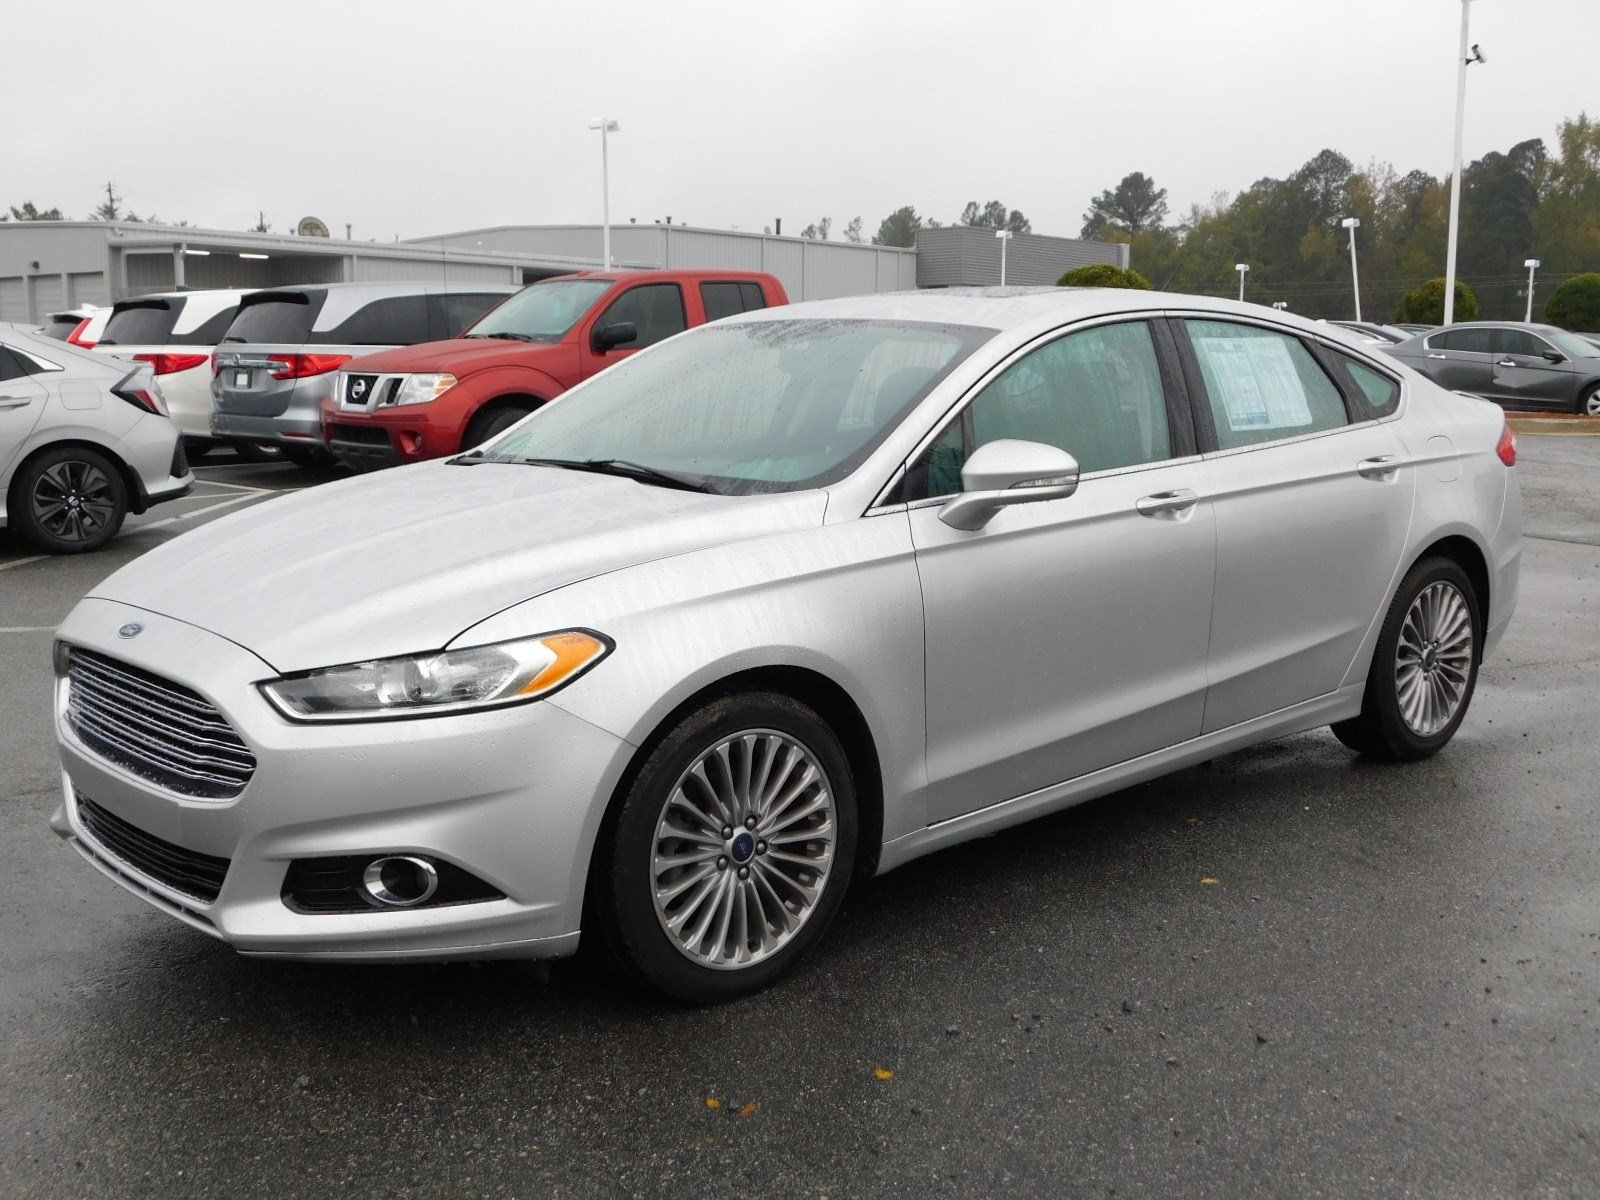 Pre Owned 2014 Ford Fusion Titanium 4dr Car in Milledgeville FX8359